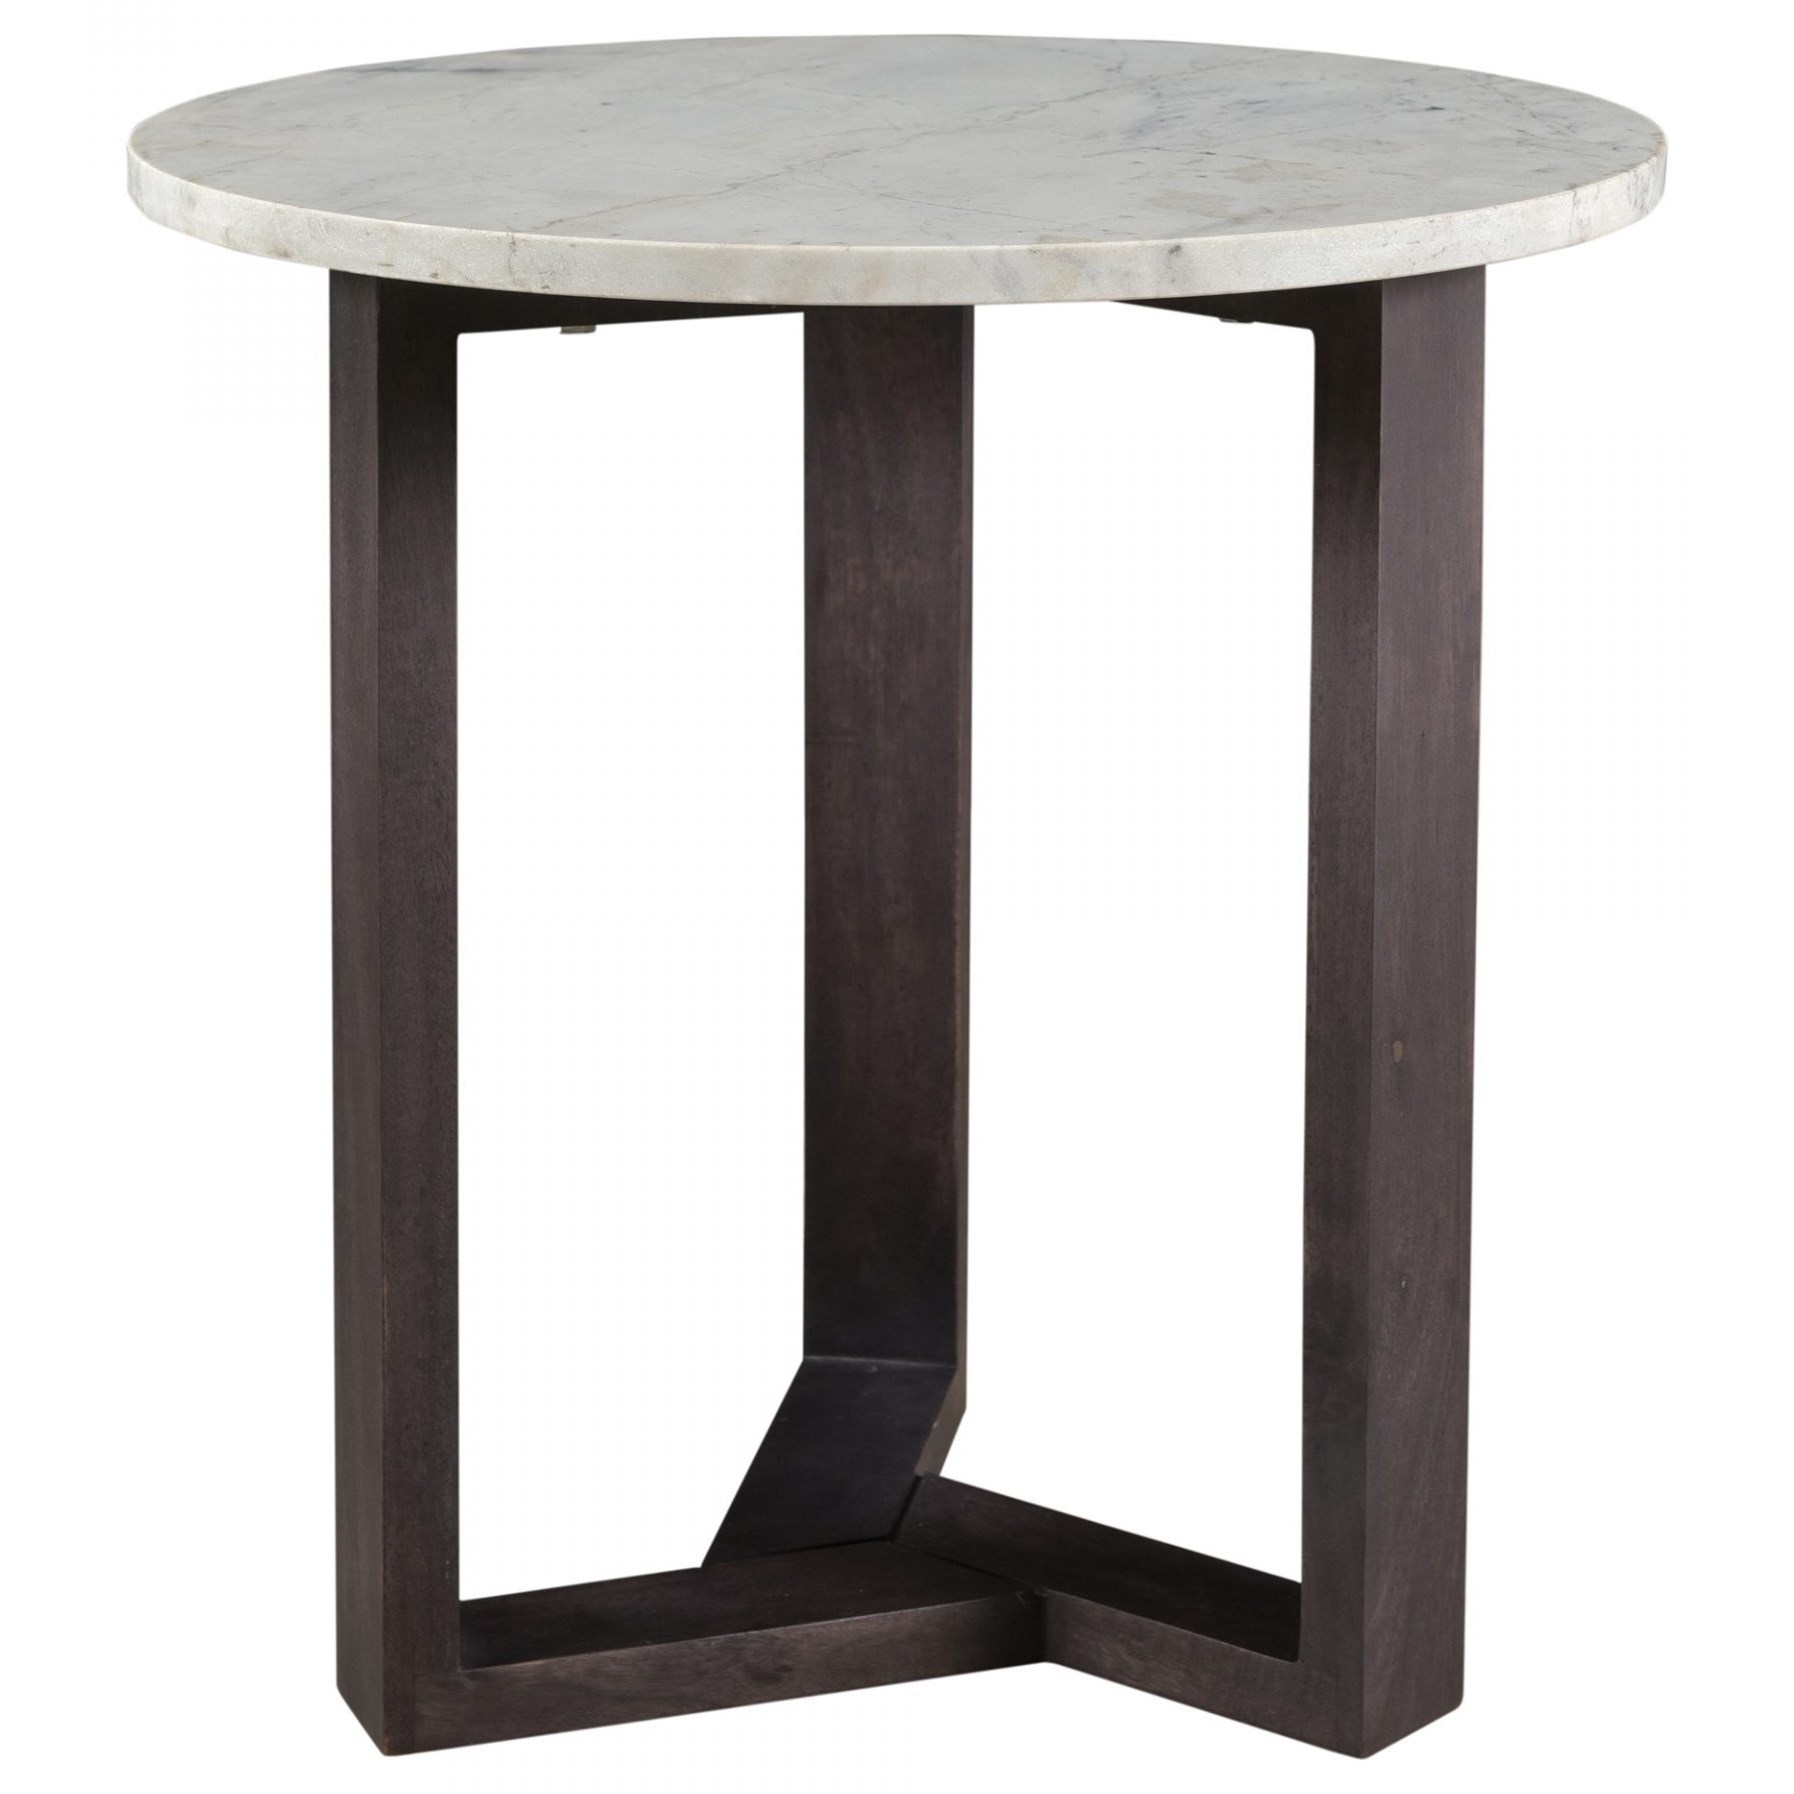 Jinxx Side Table by Moe's Home Collection at Stoney Creek Furniture